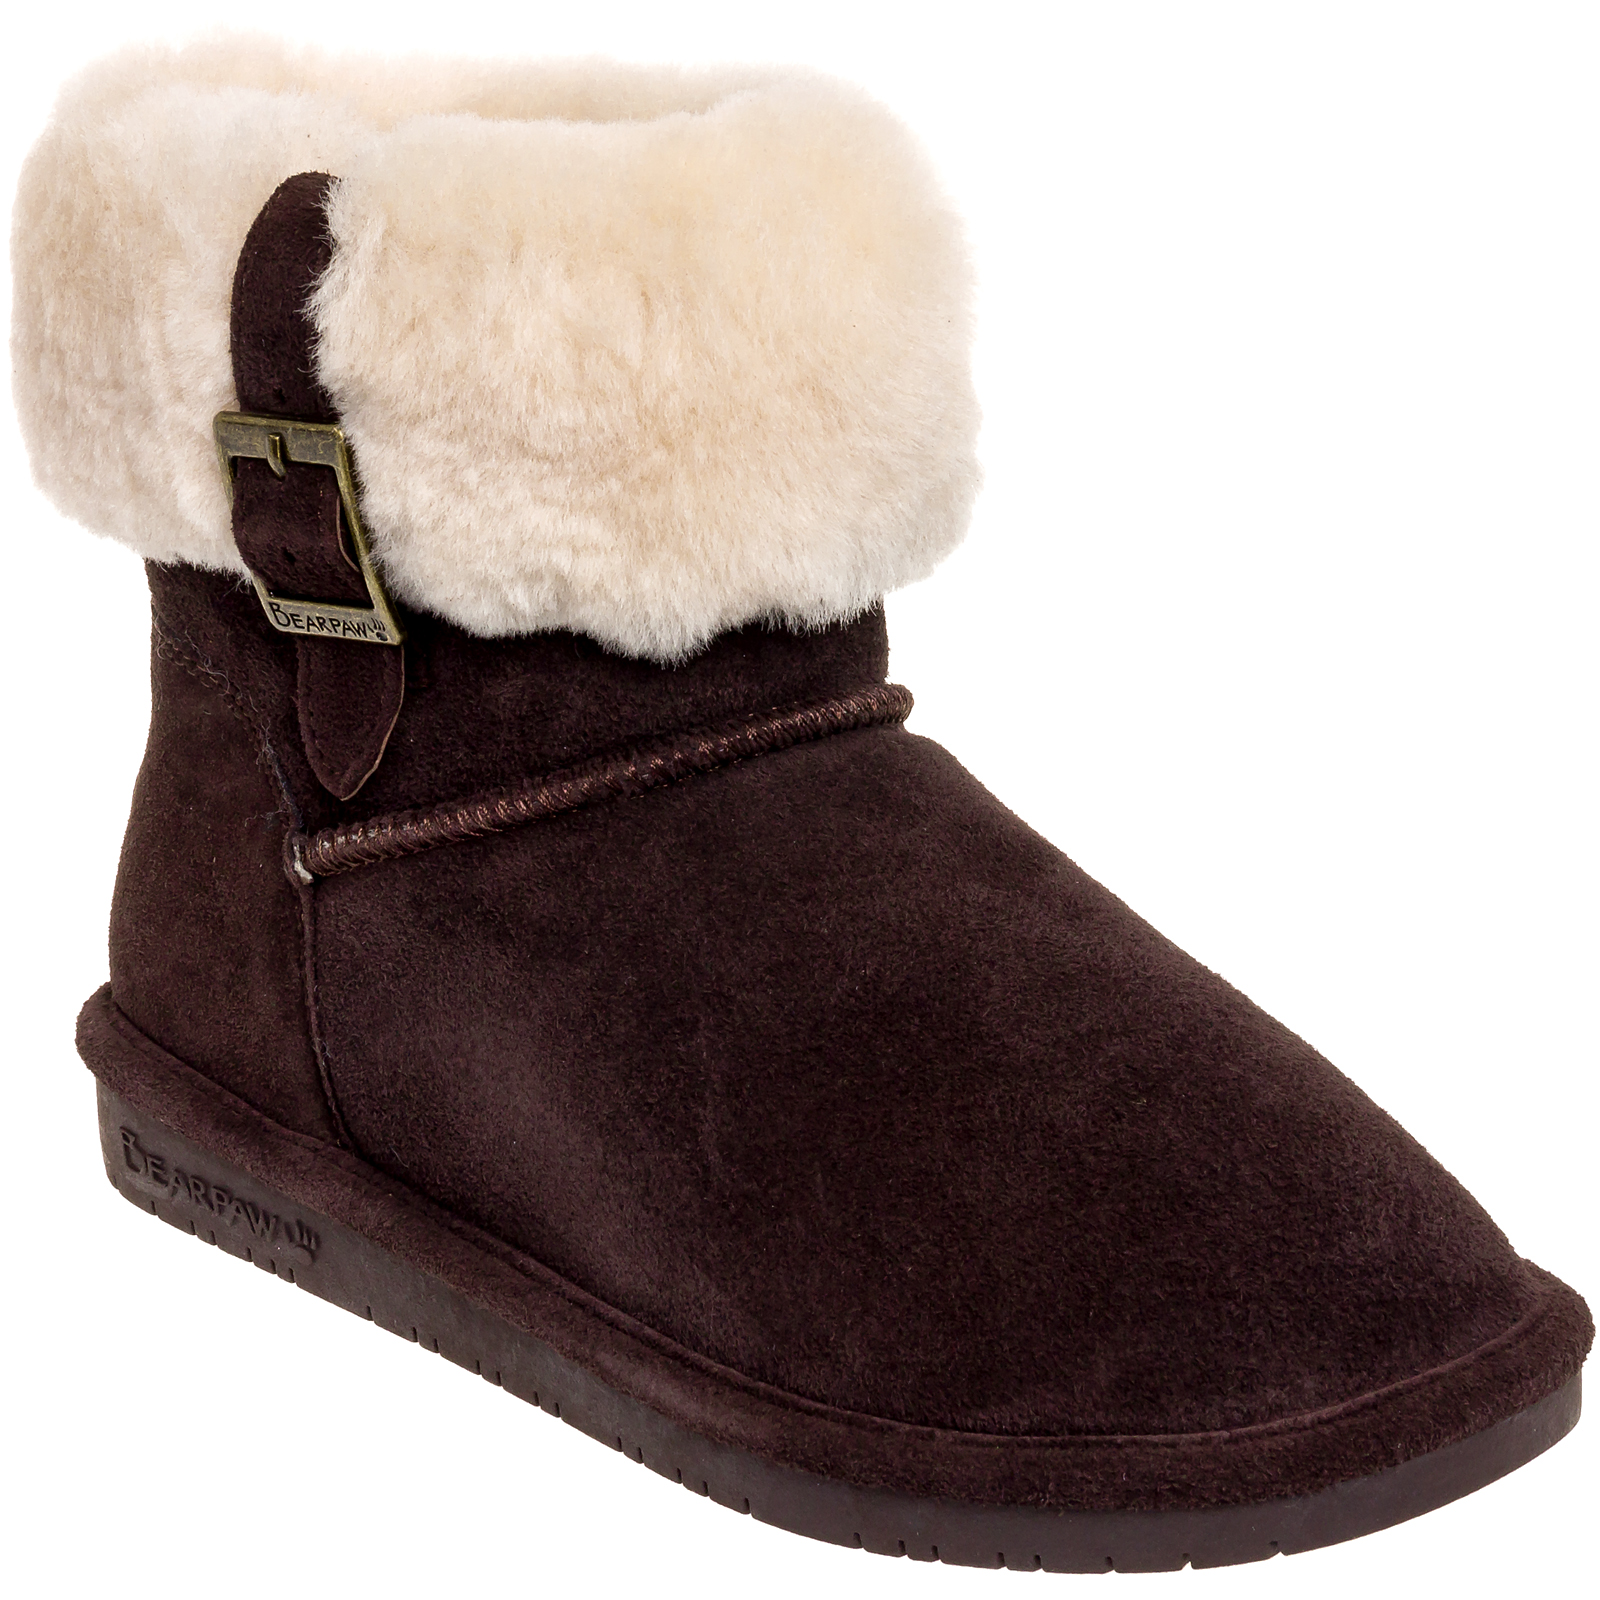 Bearpaw Women's Suede Wool Lined Abby Slip On Winter Ankl...